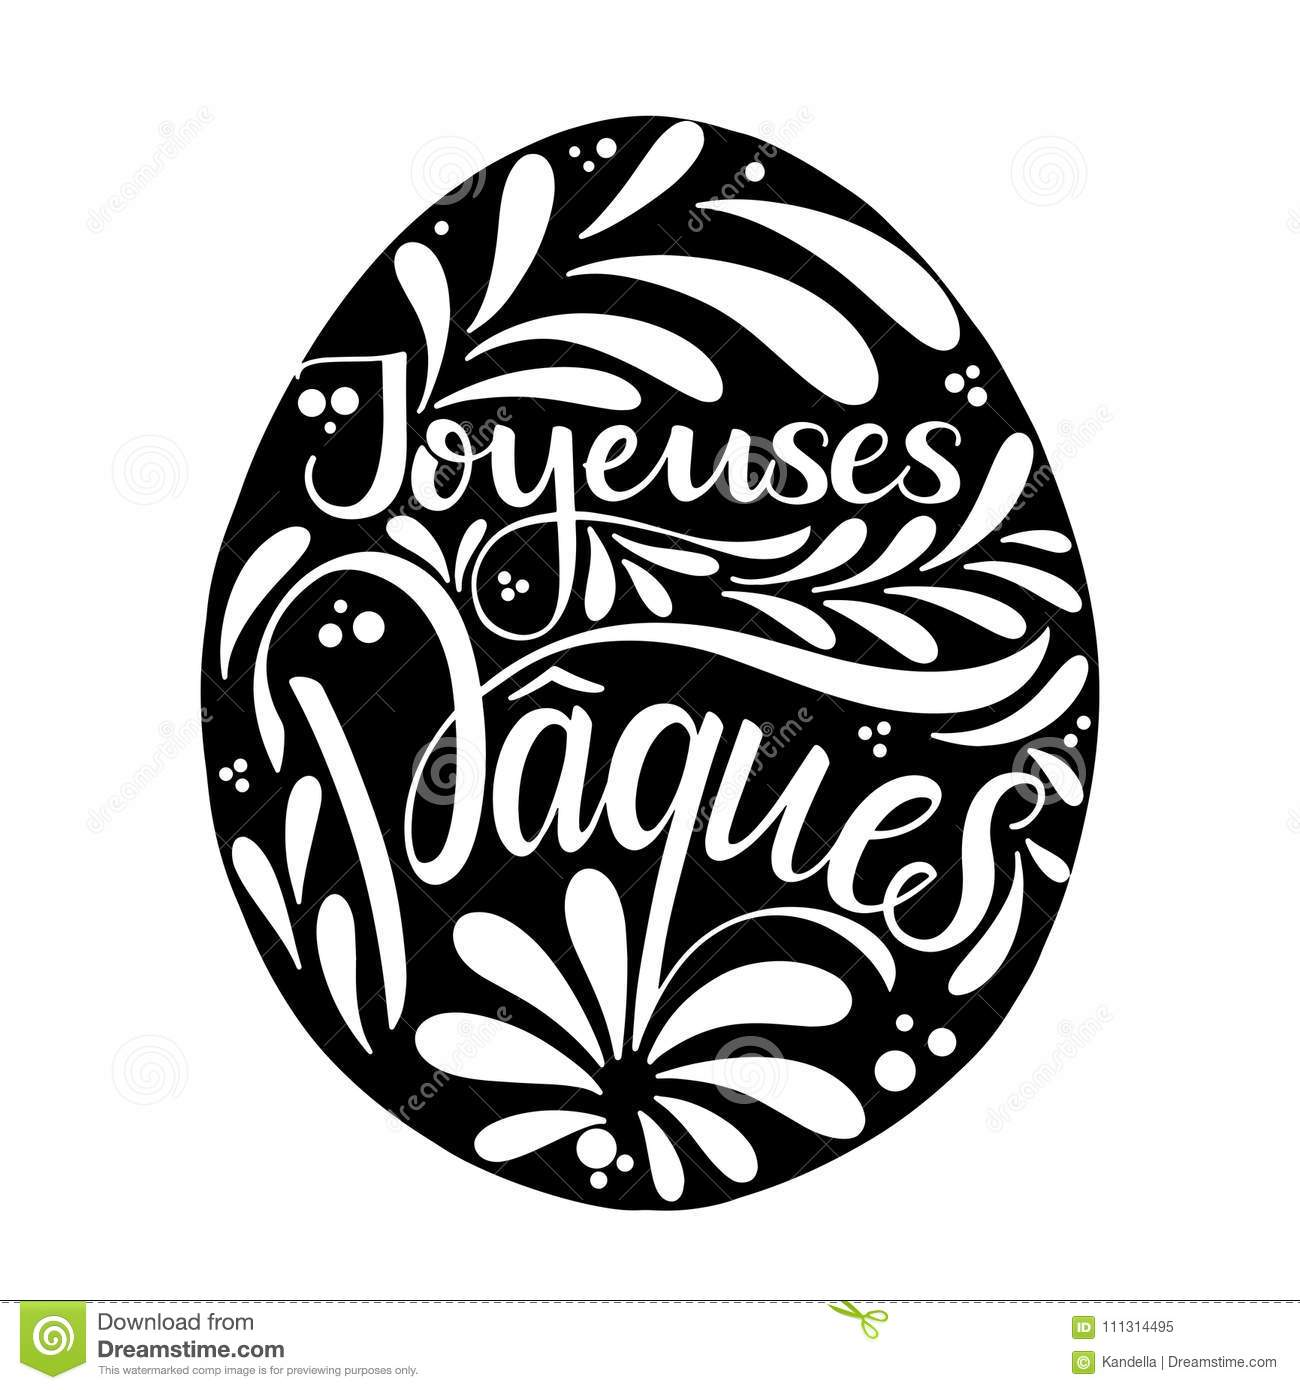 Joyeuses Paques Lettering Stock Vector Illustration Of Spring